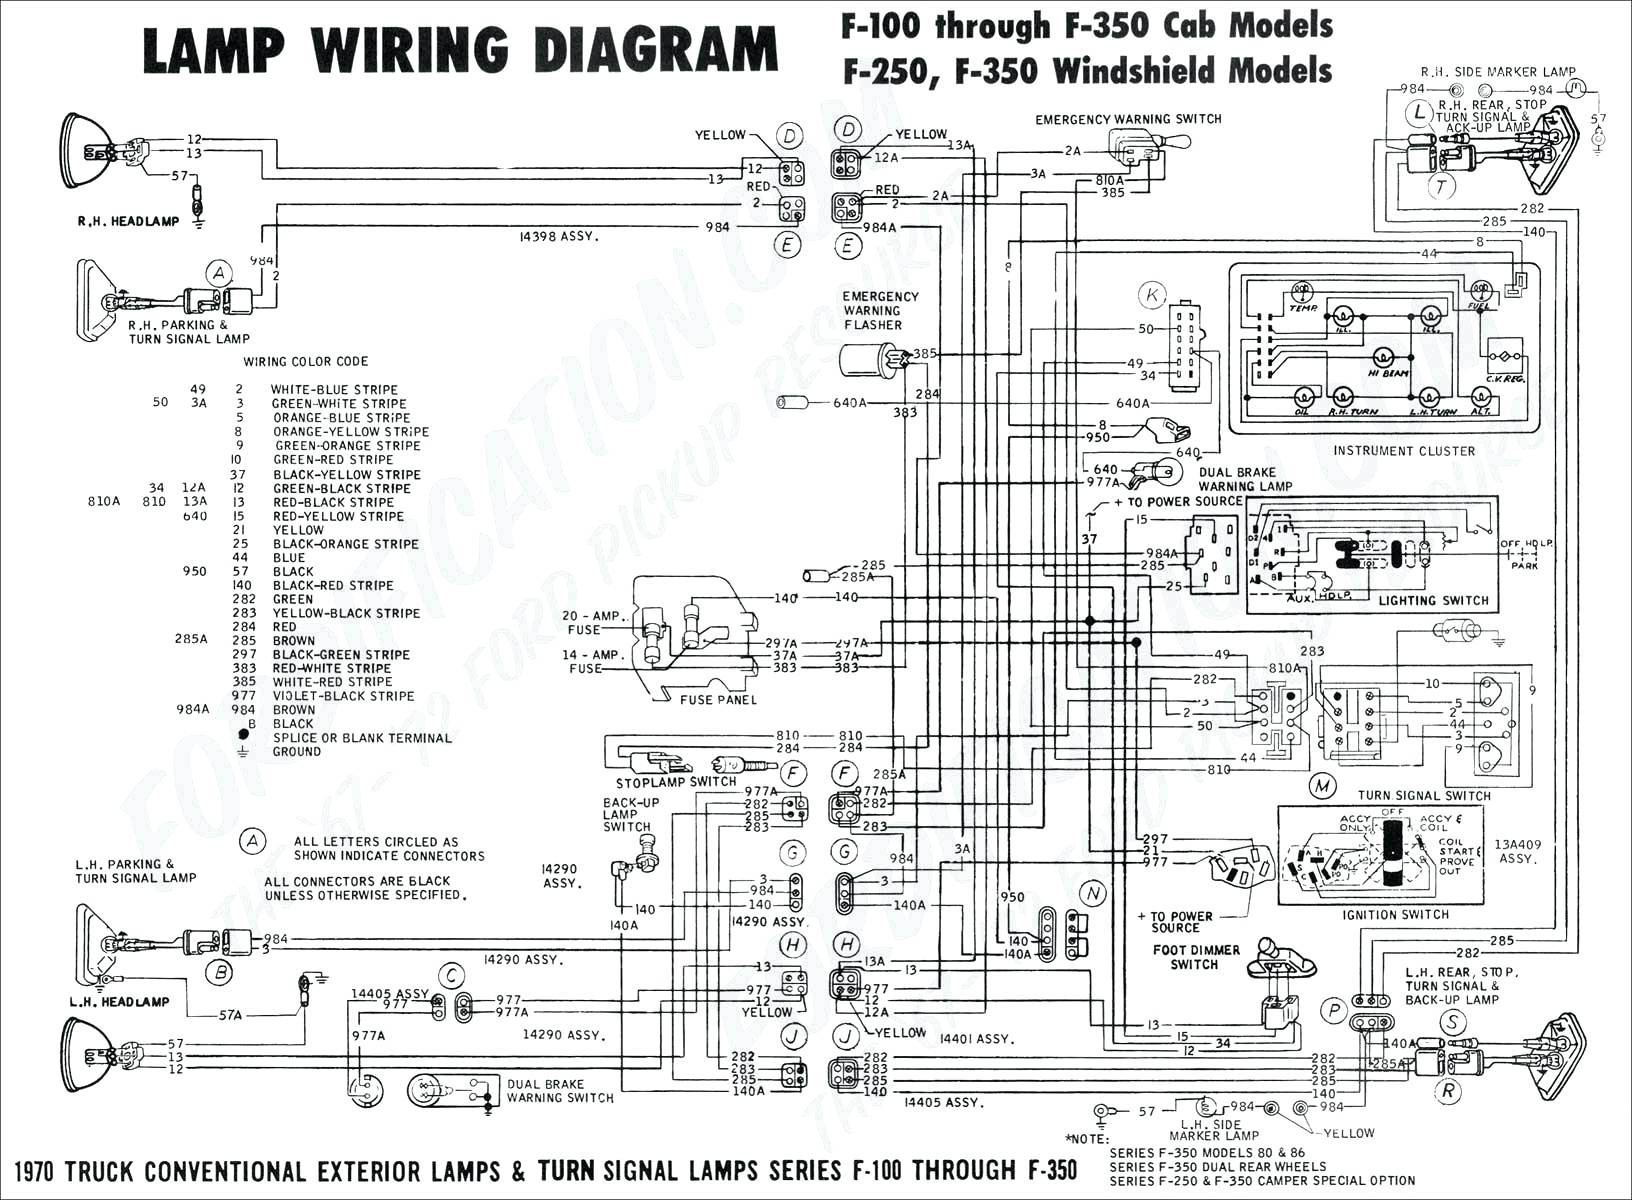 Brake Pedal Switch Diagram Brake Lights Wiring Diagram Elegant Brake Light Wiring Diagram Of Brake Pedal Switch Diagram